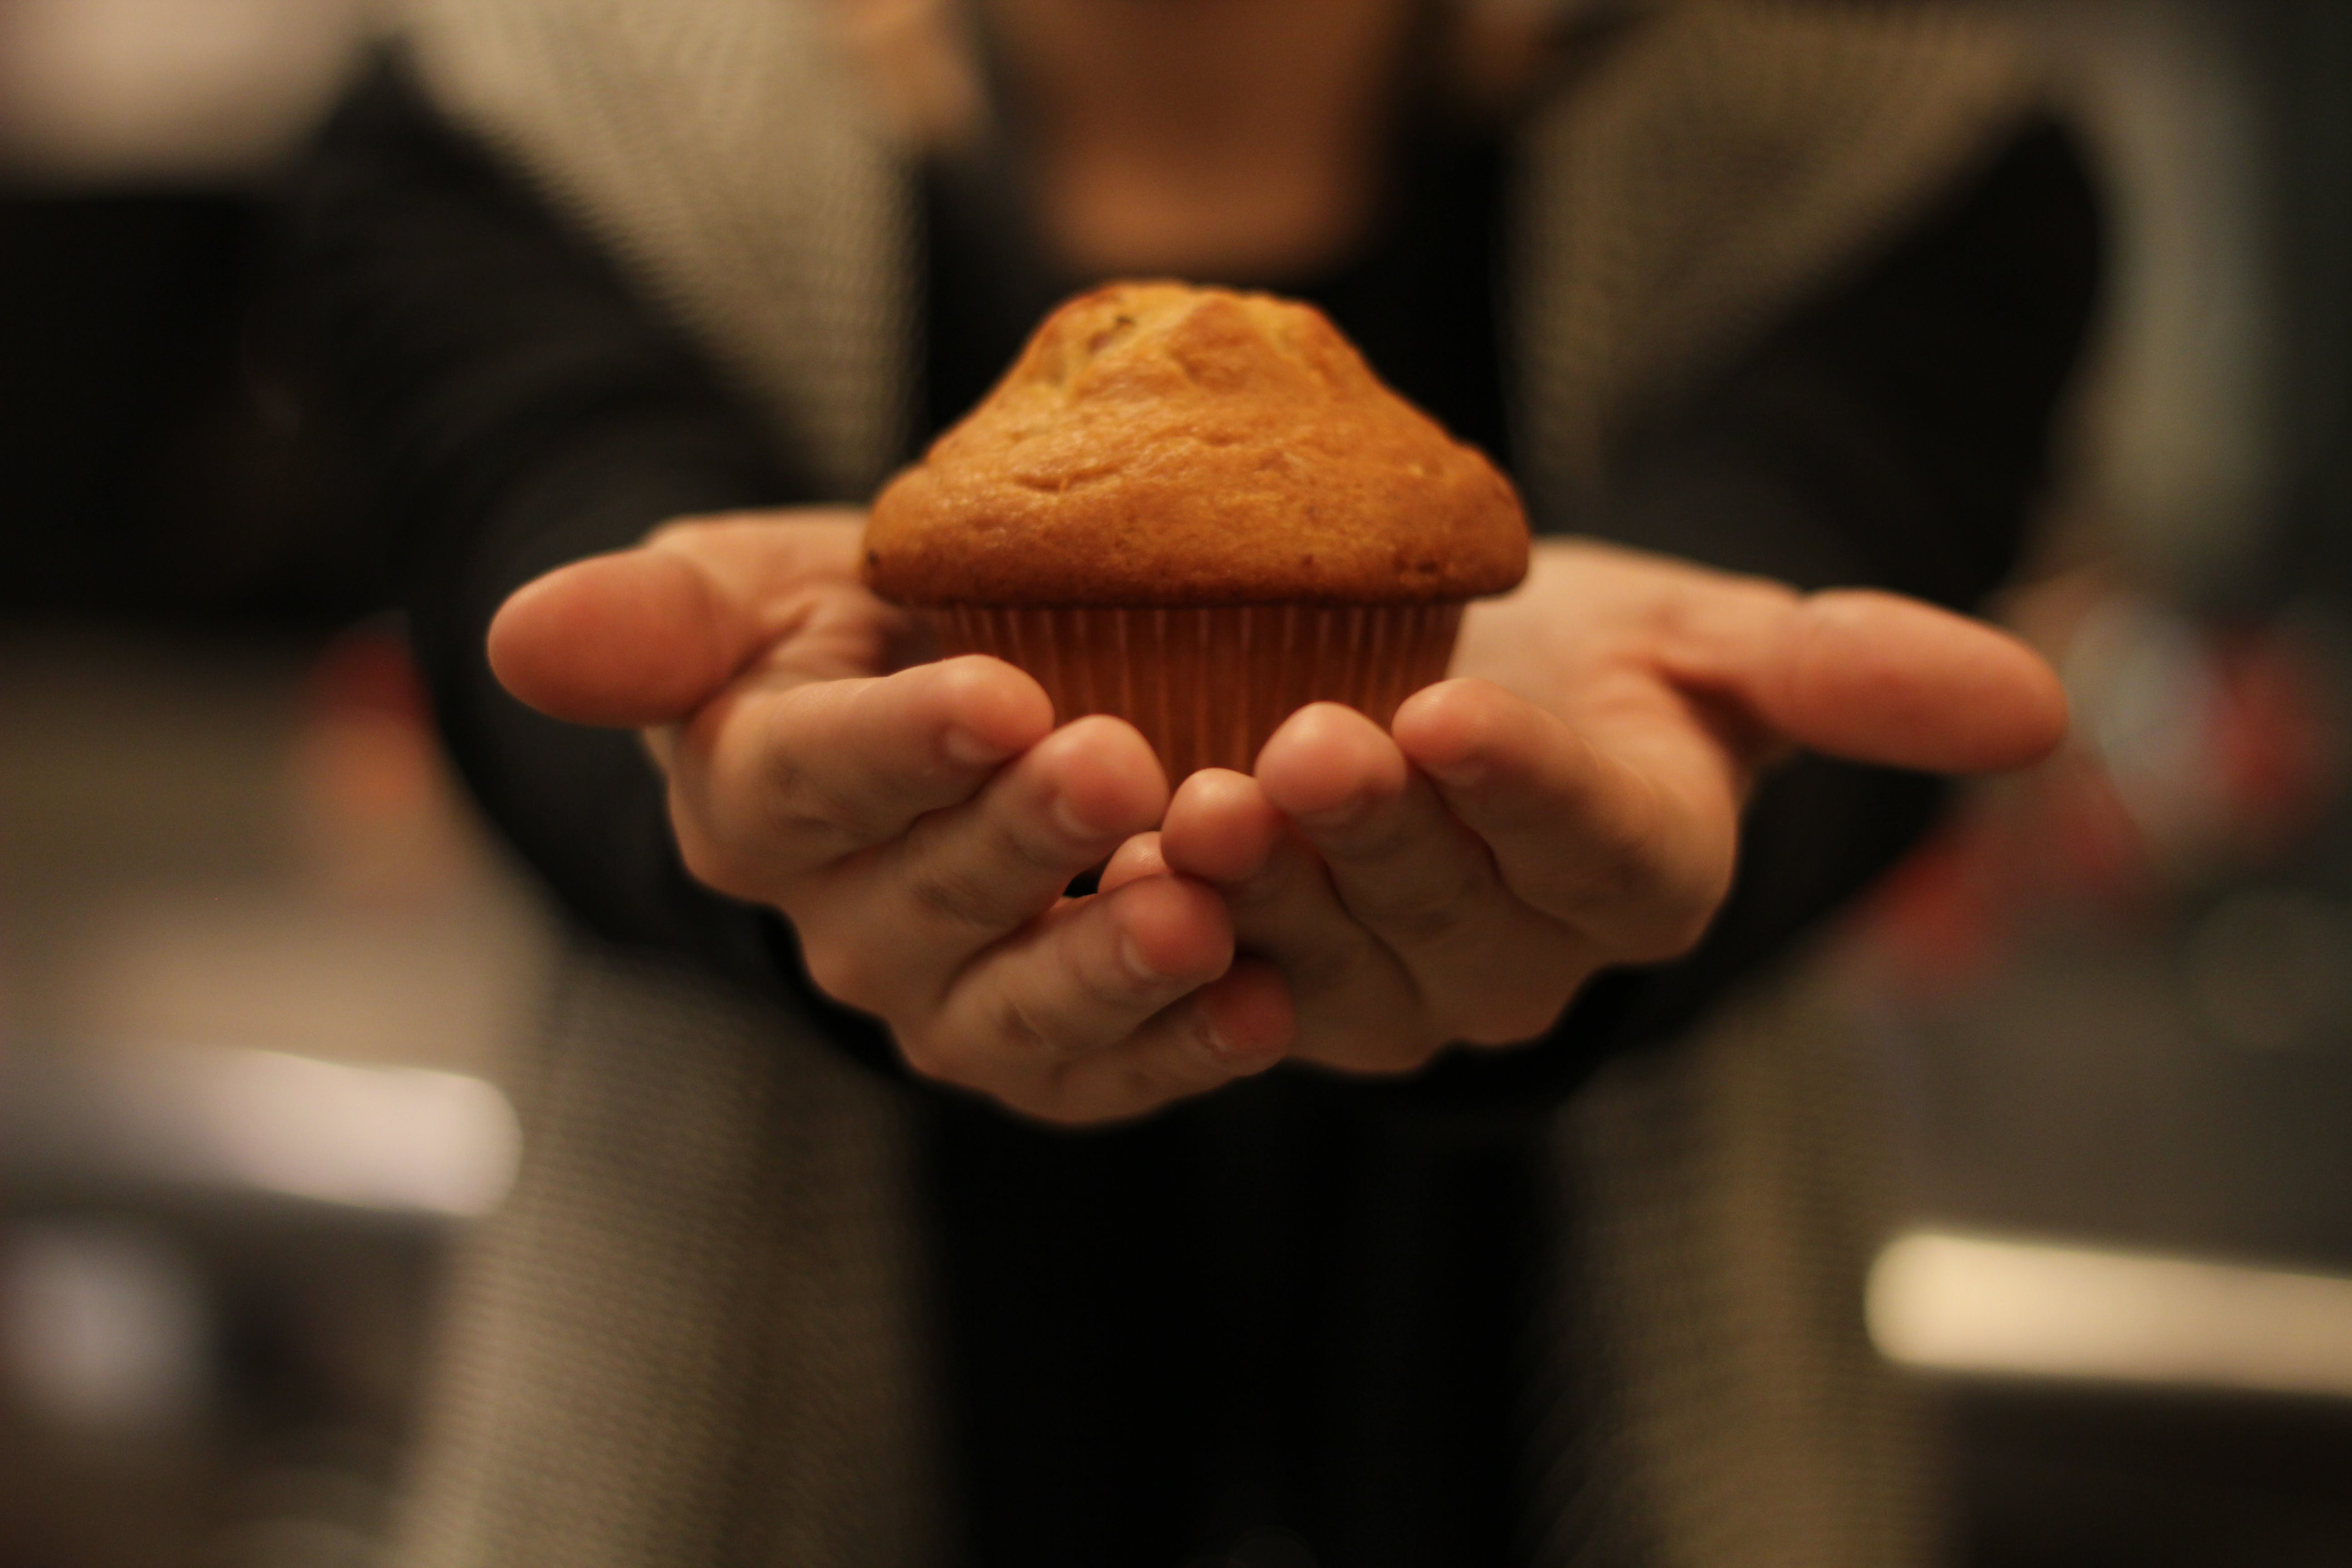 Person's Hand With Cupcake